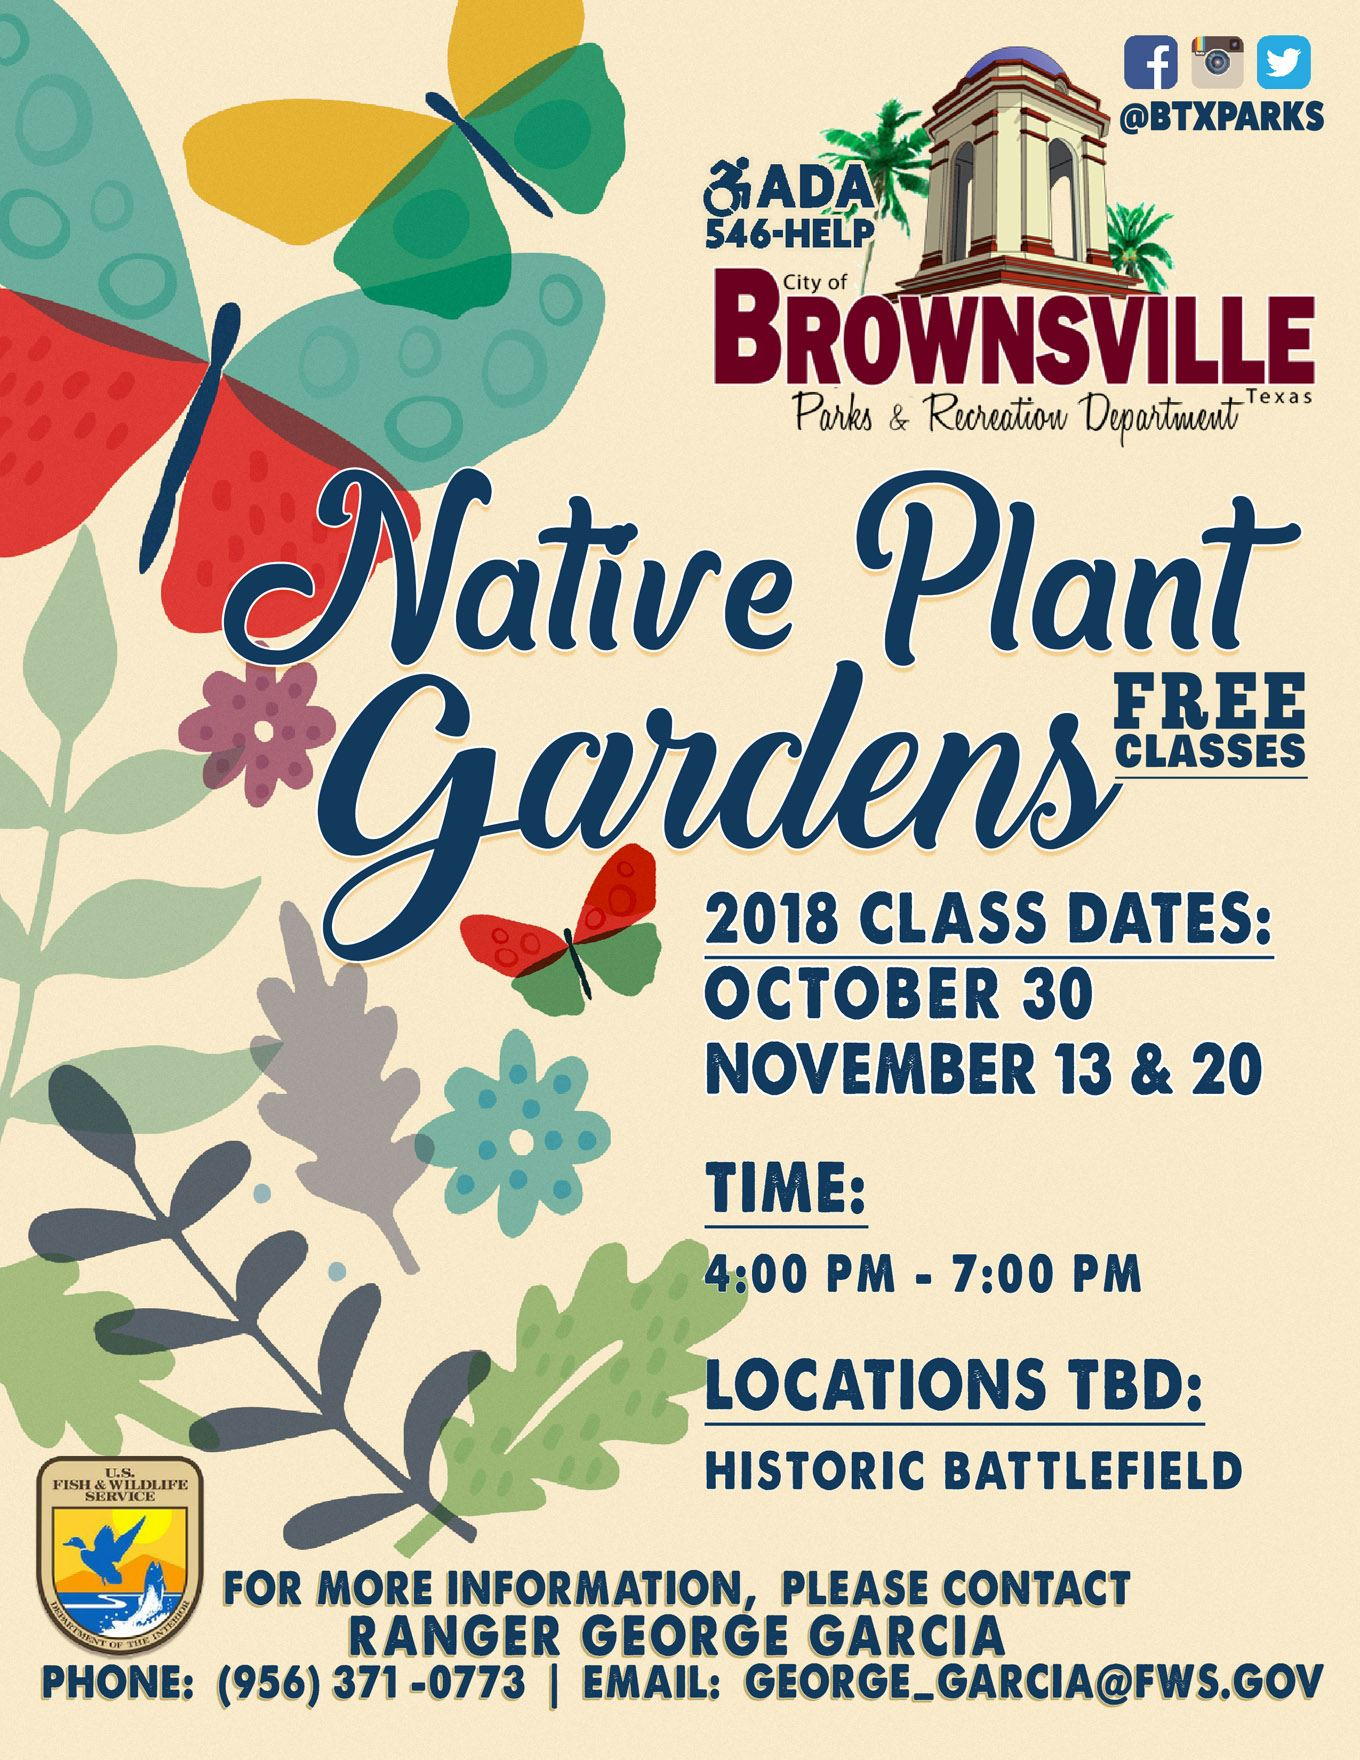 NativePlantGarden Classes 2018